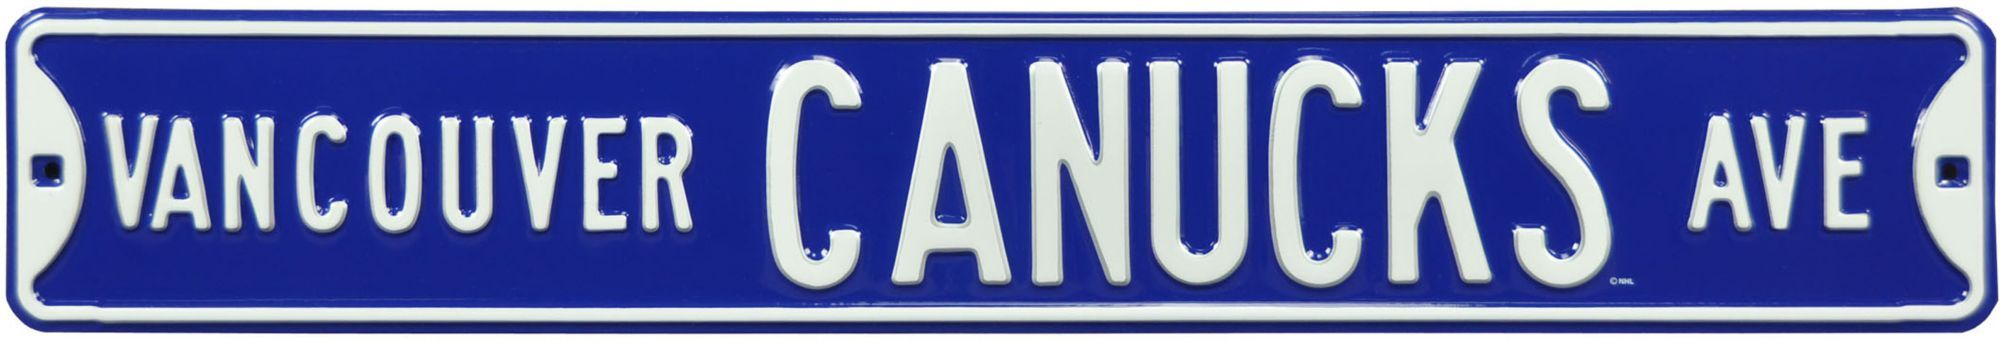 Authentic Street Signs Vancouver Canucks Ave Sign, Team